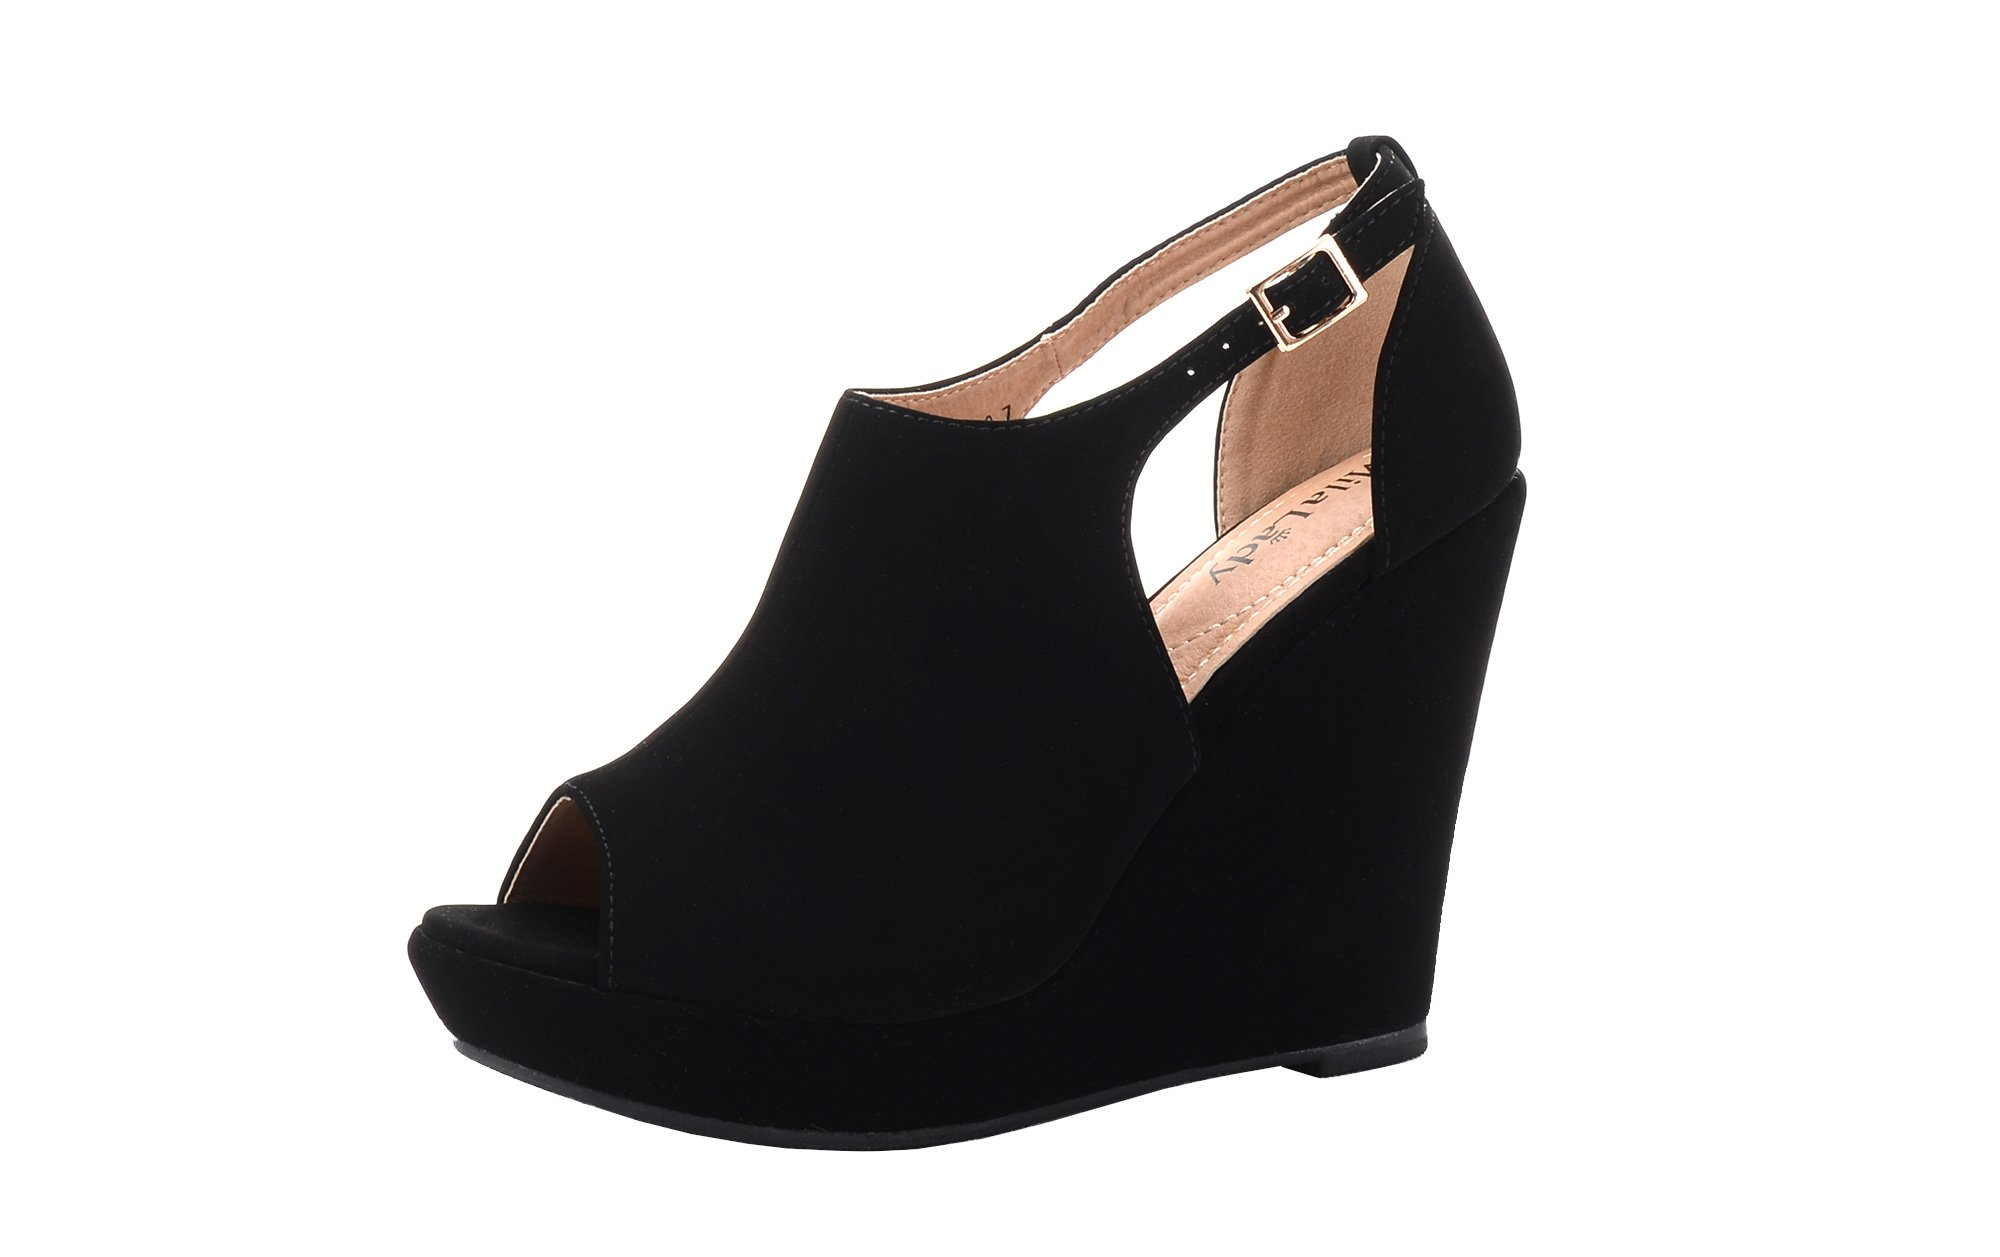 Mila Lady( Lisa 2 Women's Platform Wedges Cutout Side Straps,Peep-Toe Ankle Bootie. Black 11